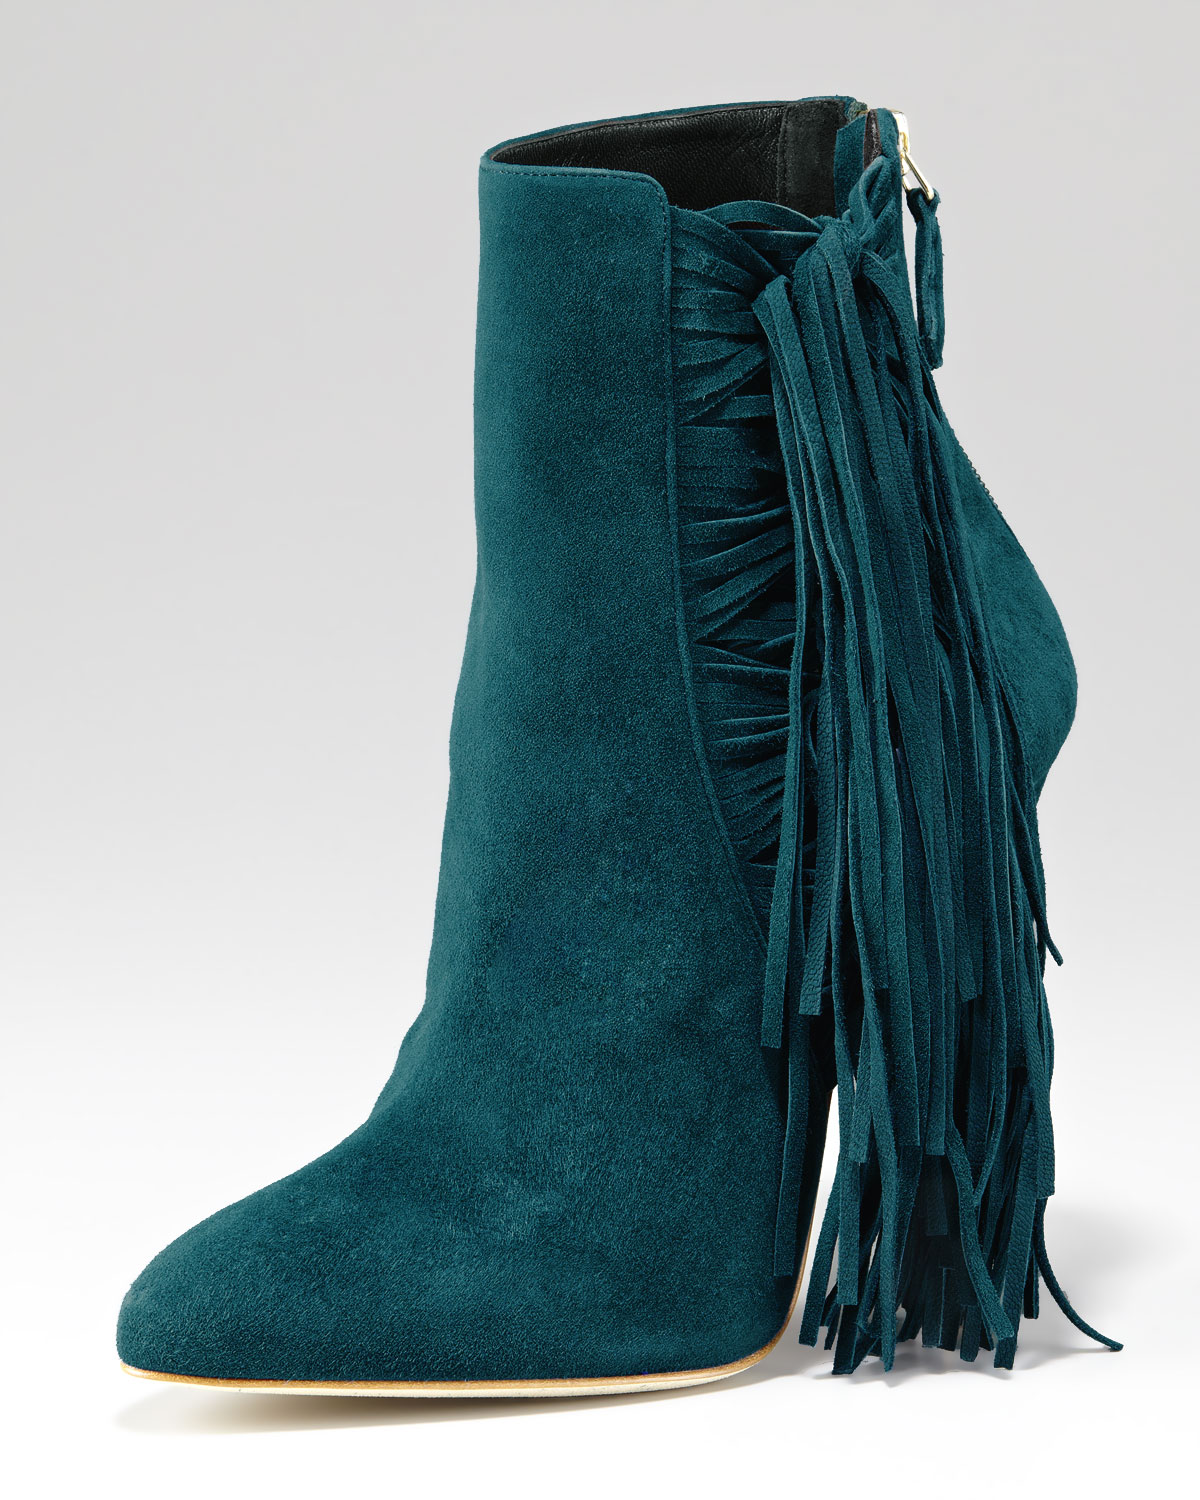 Brian atwood Pipi Suede Fringe Ankle Boot in Blue | Lyst